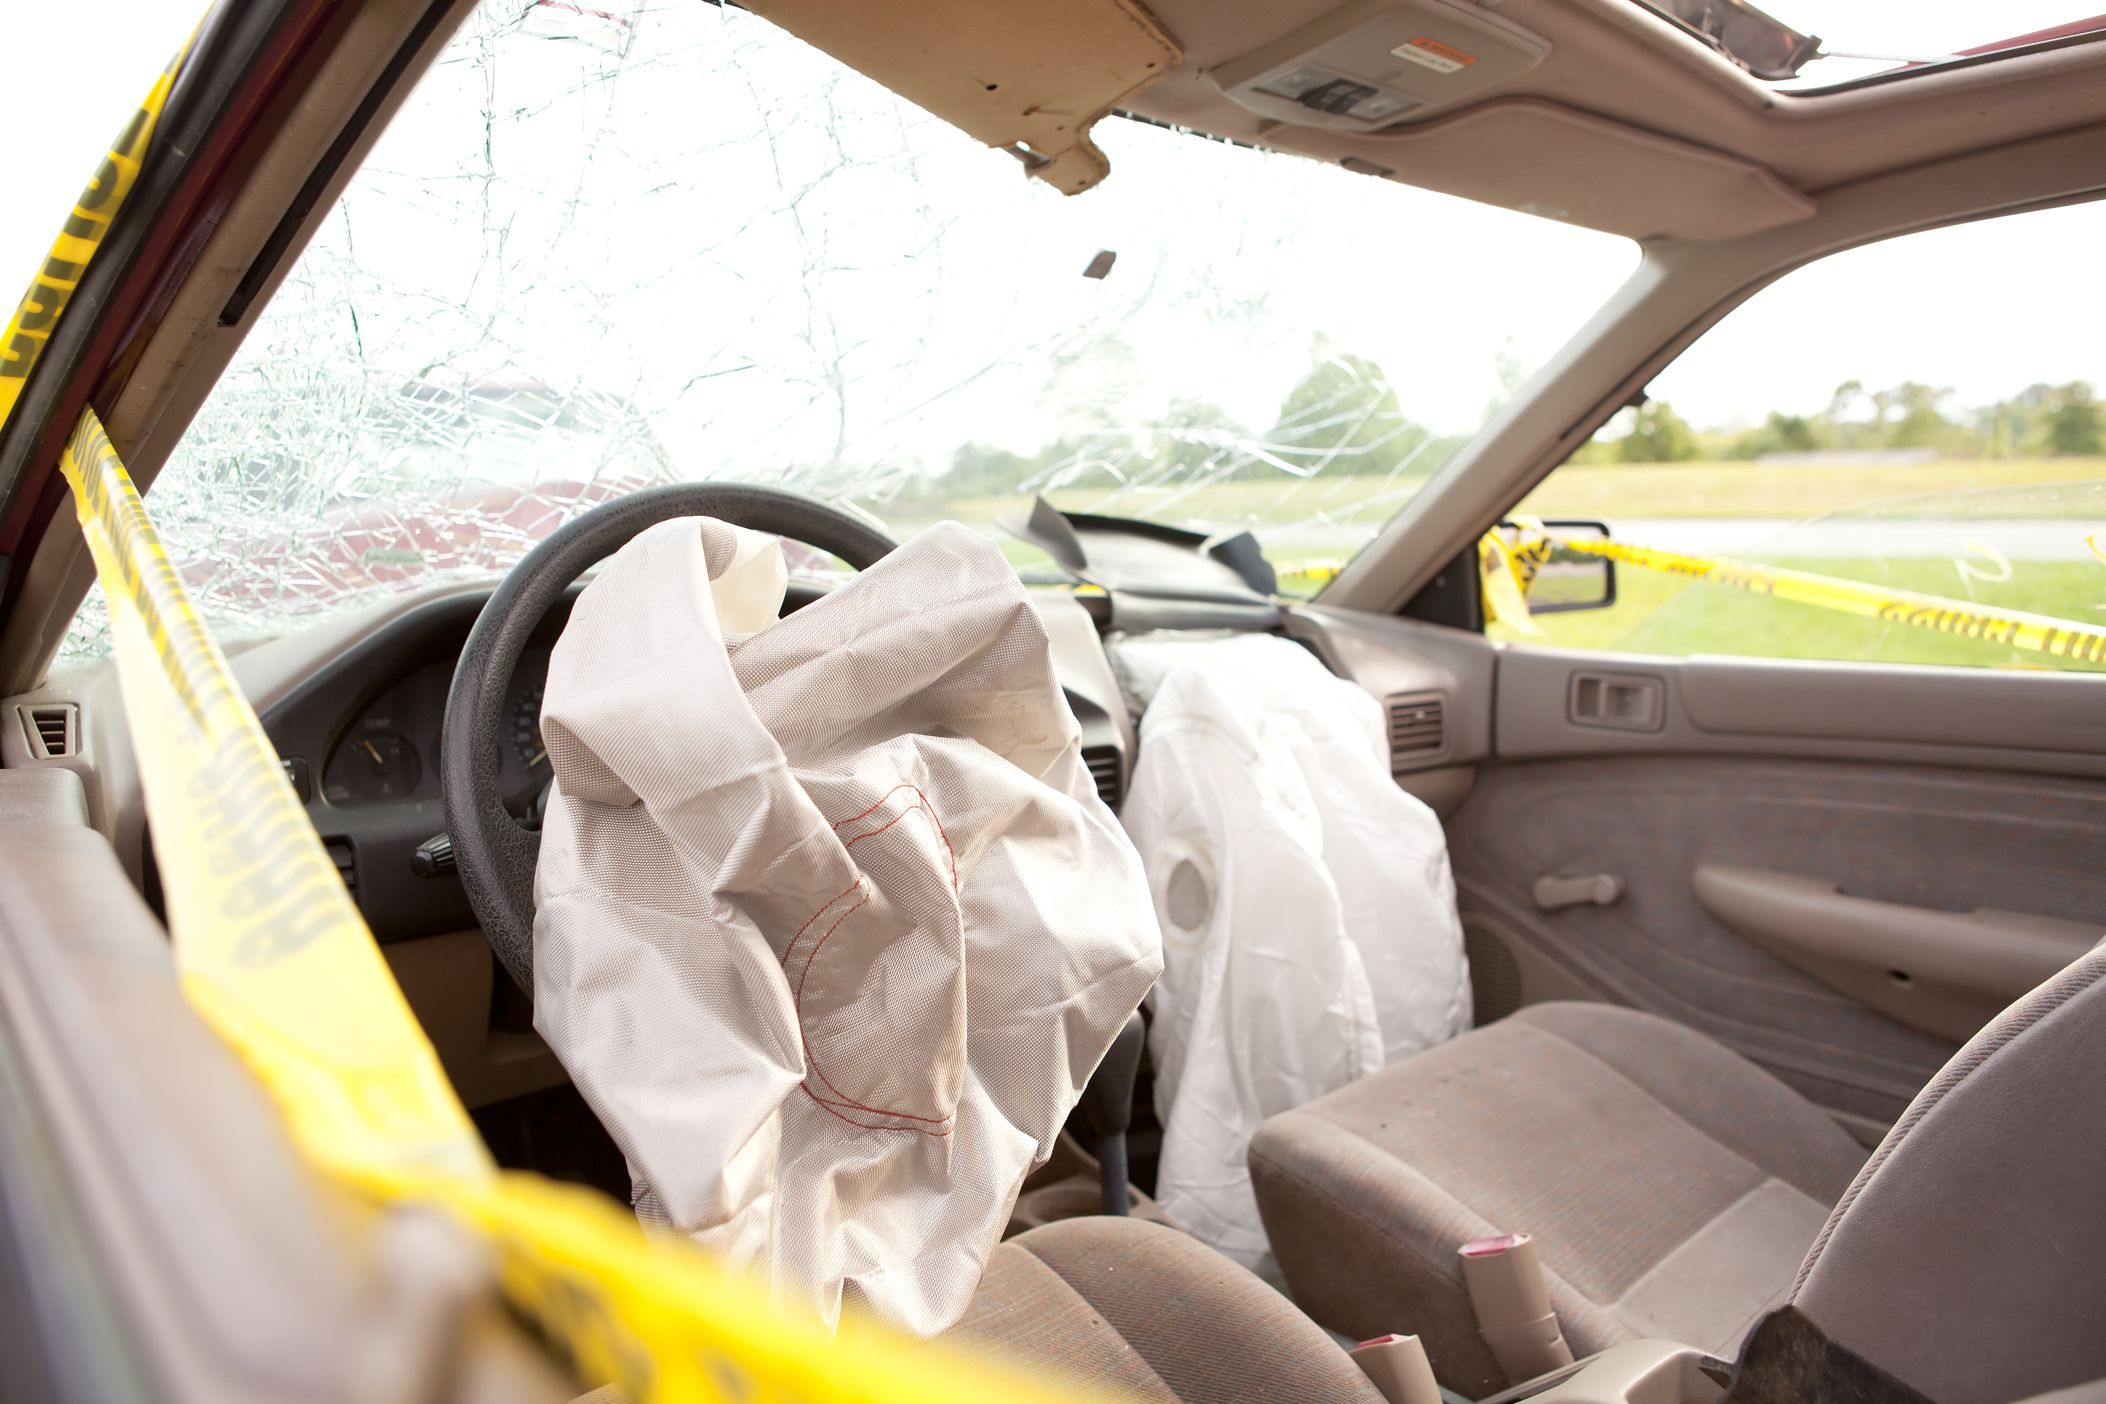 Airbags deployed after an auto accident